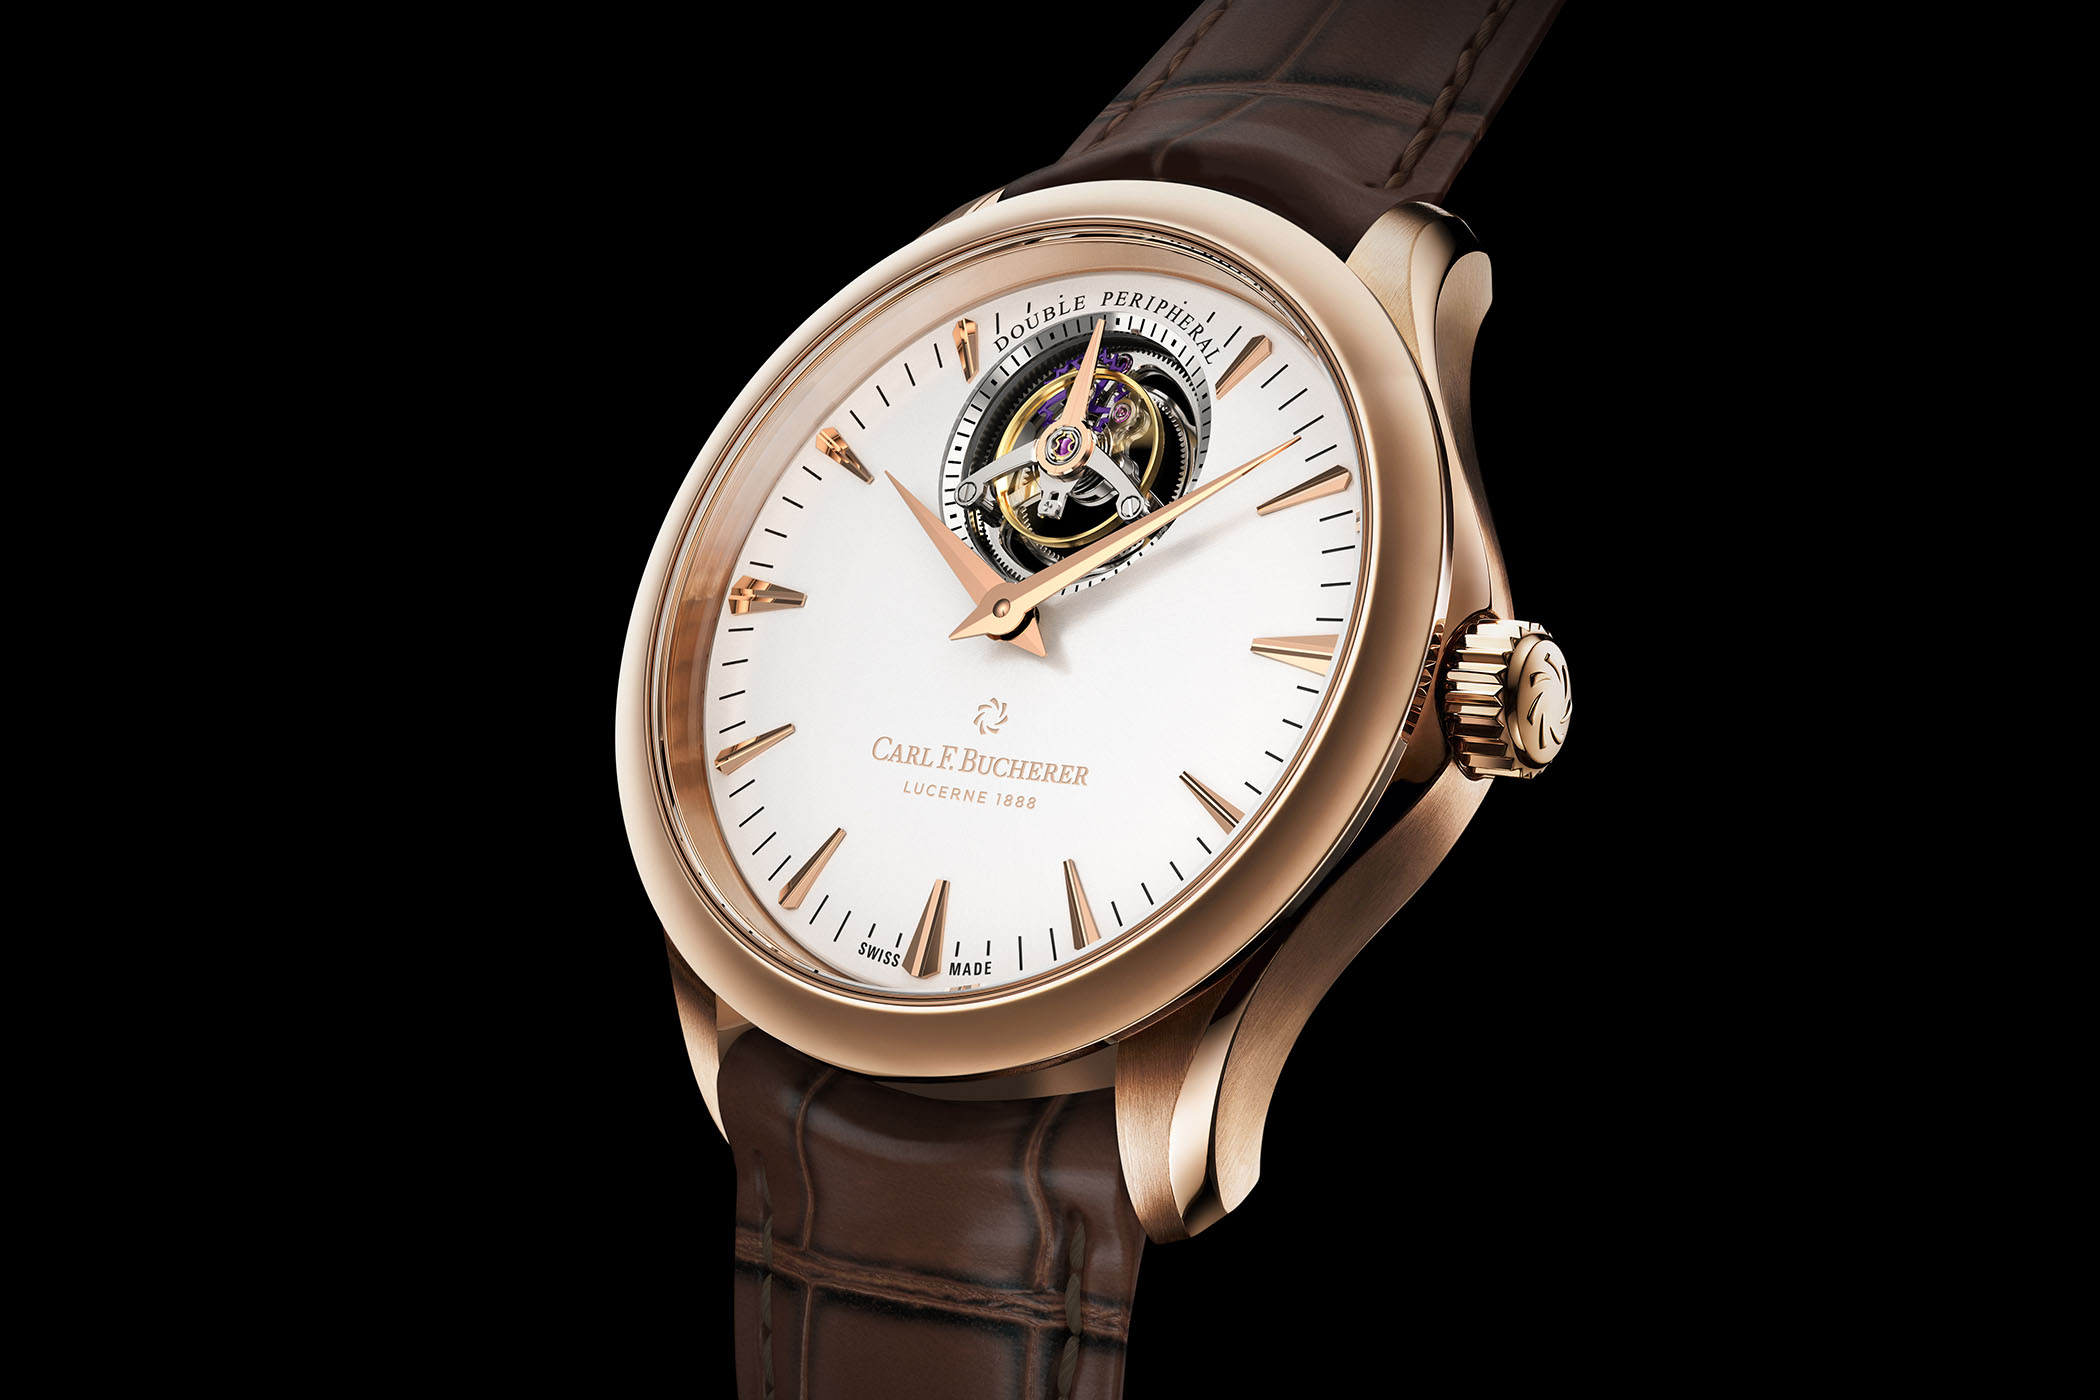 Carl F. Bucherer Manero Tourbillon DoublePeripheral